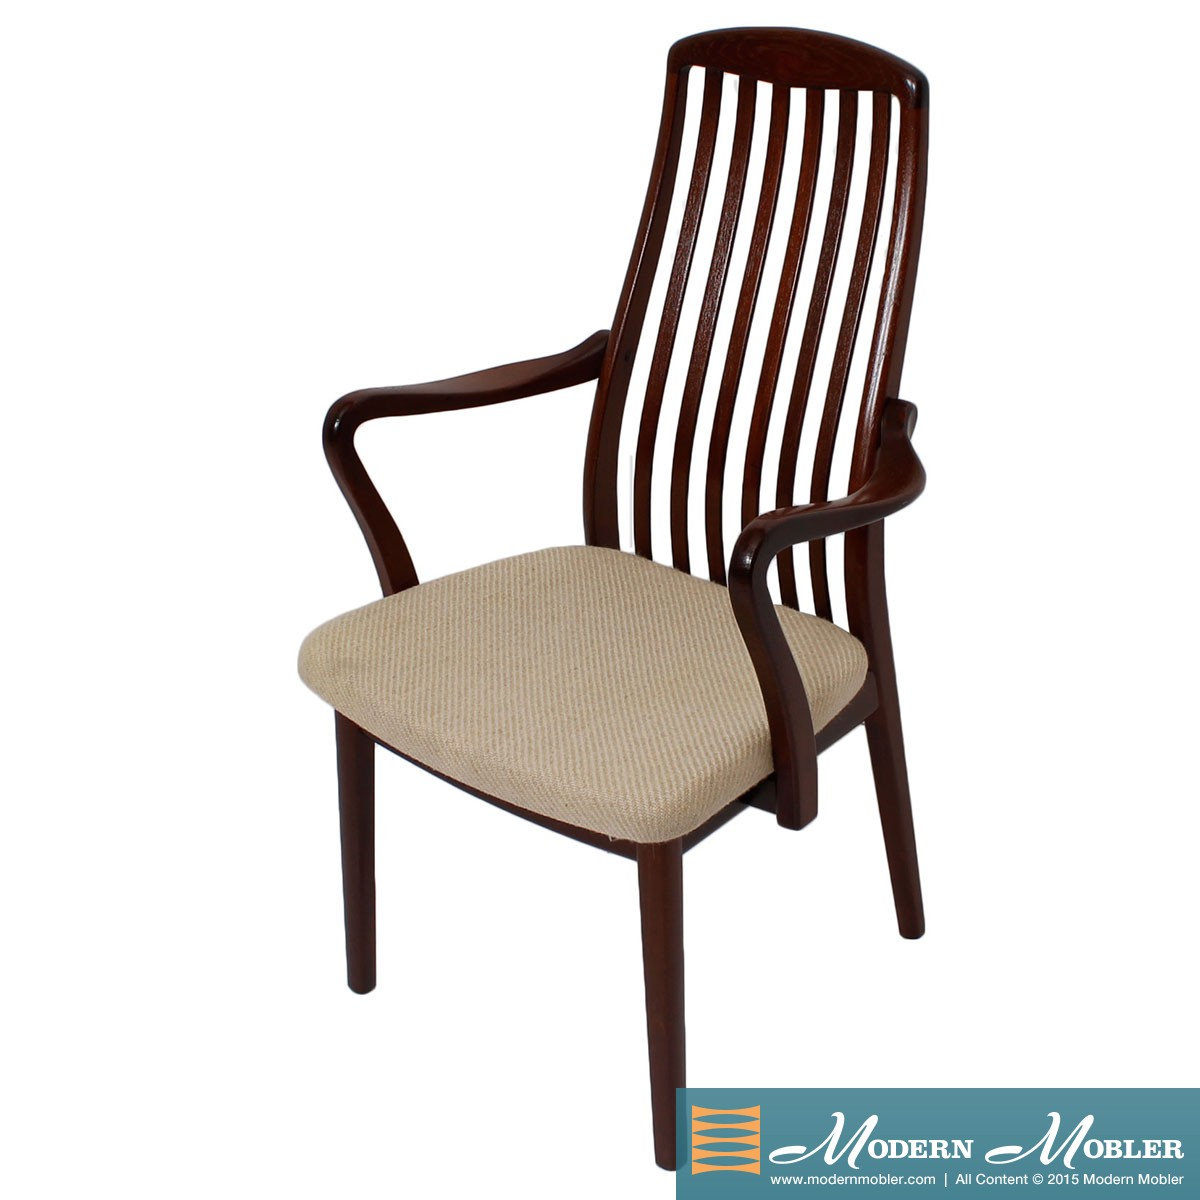 Set of 6 (2 Arm + 4 Side) Danish Modern Slatback Dining Chairs